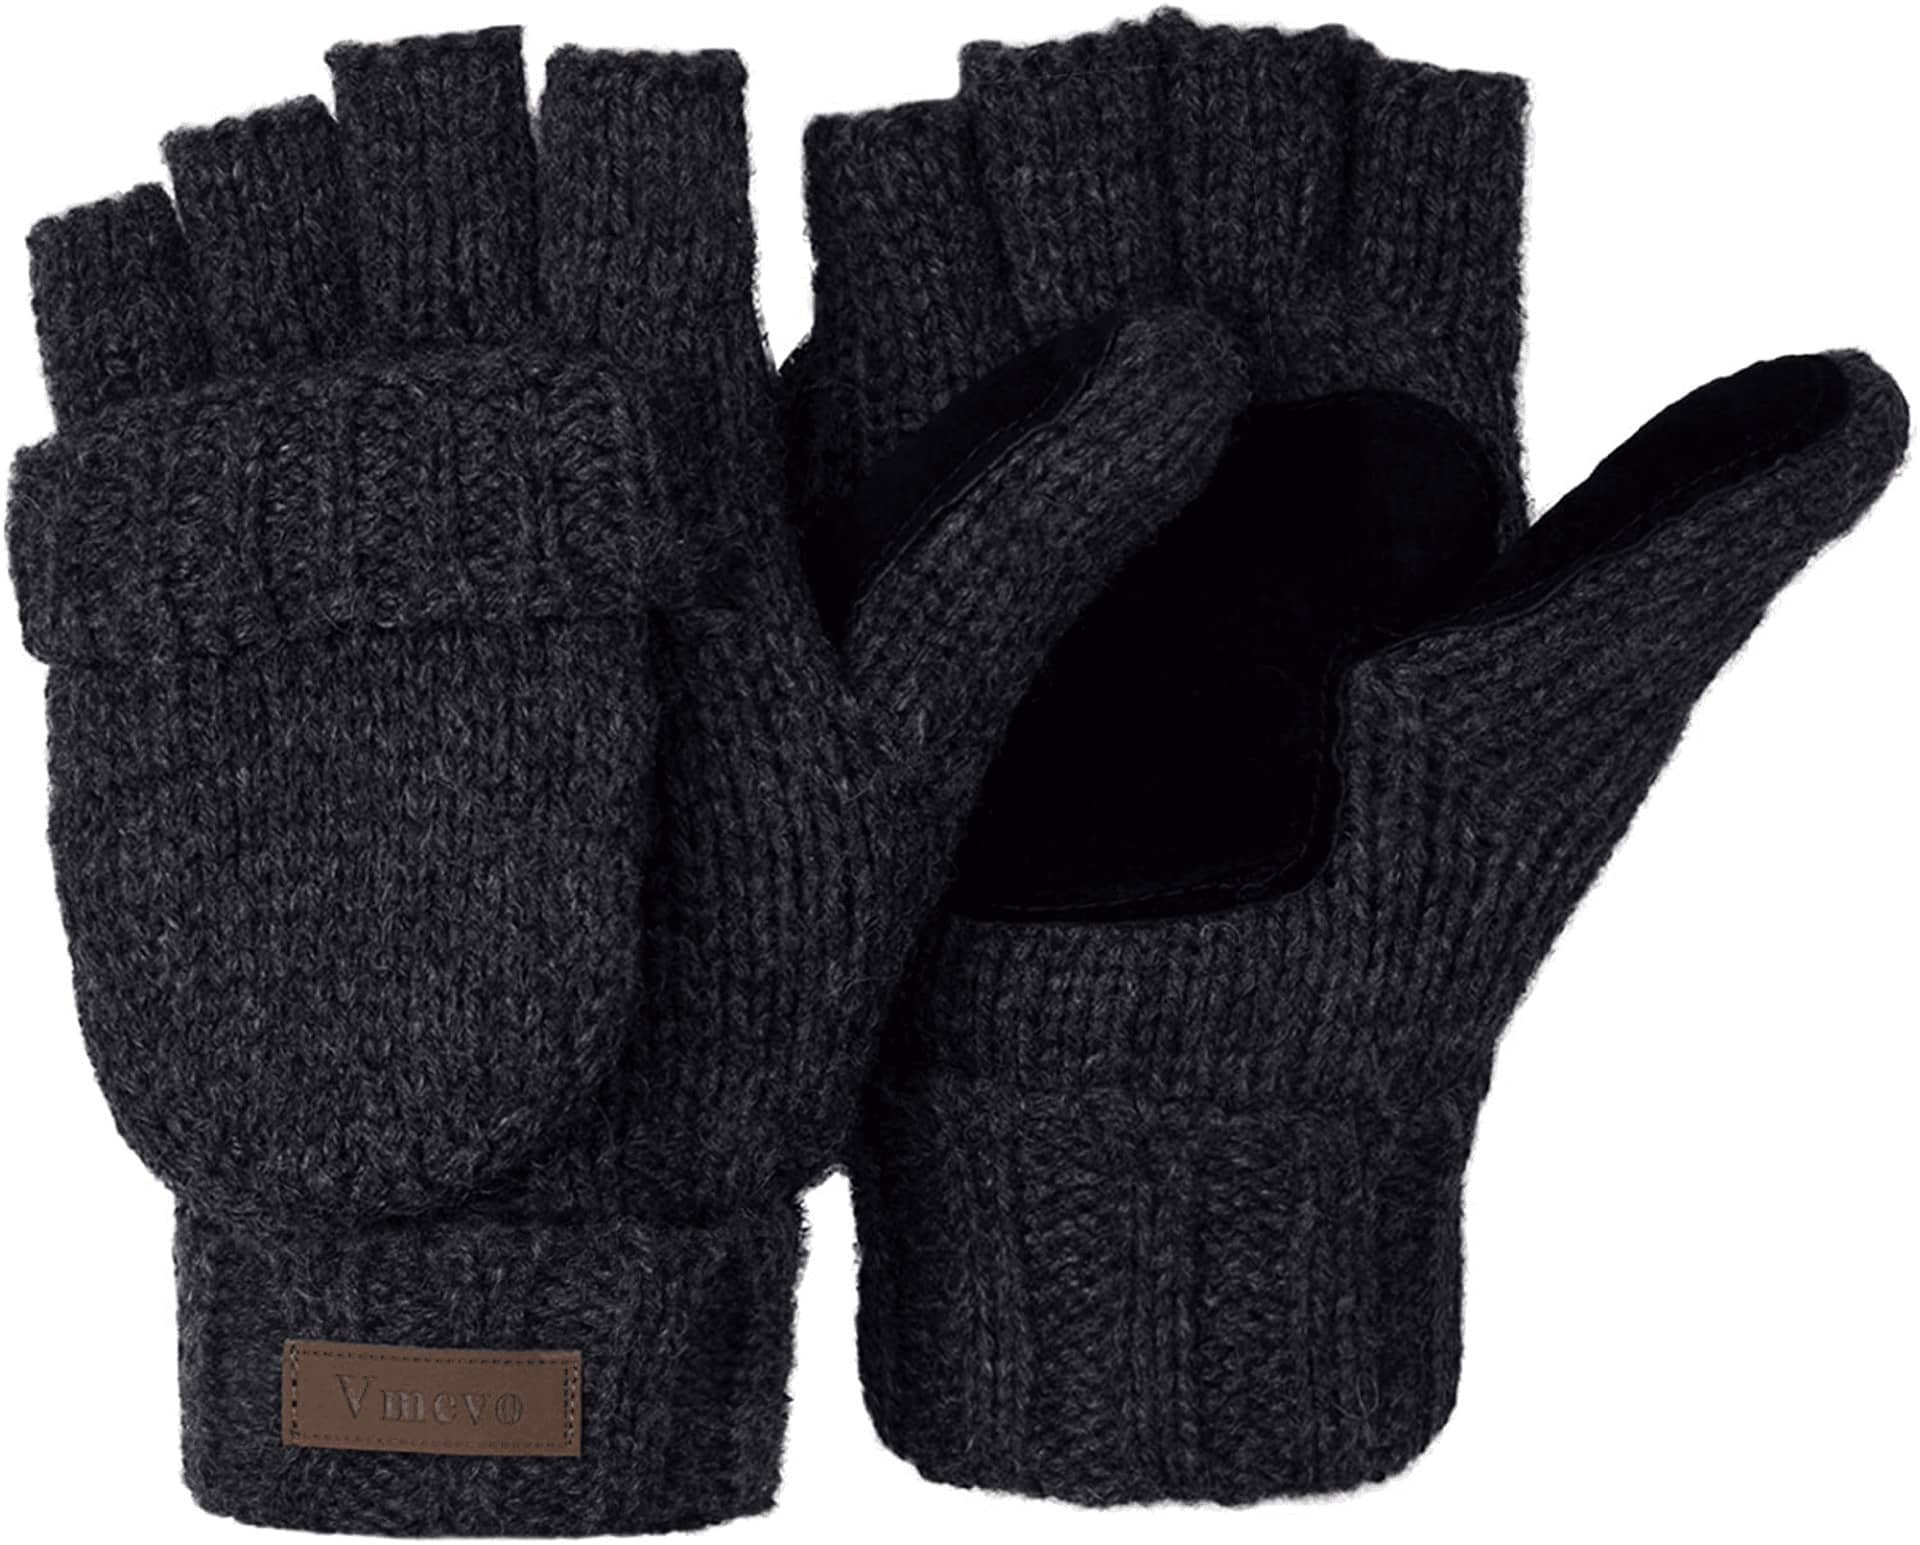 Best Photo Gifts for Photographers - Ideas Photographer Lovers - Photography Gloves